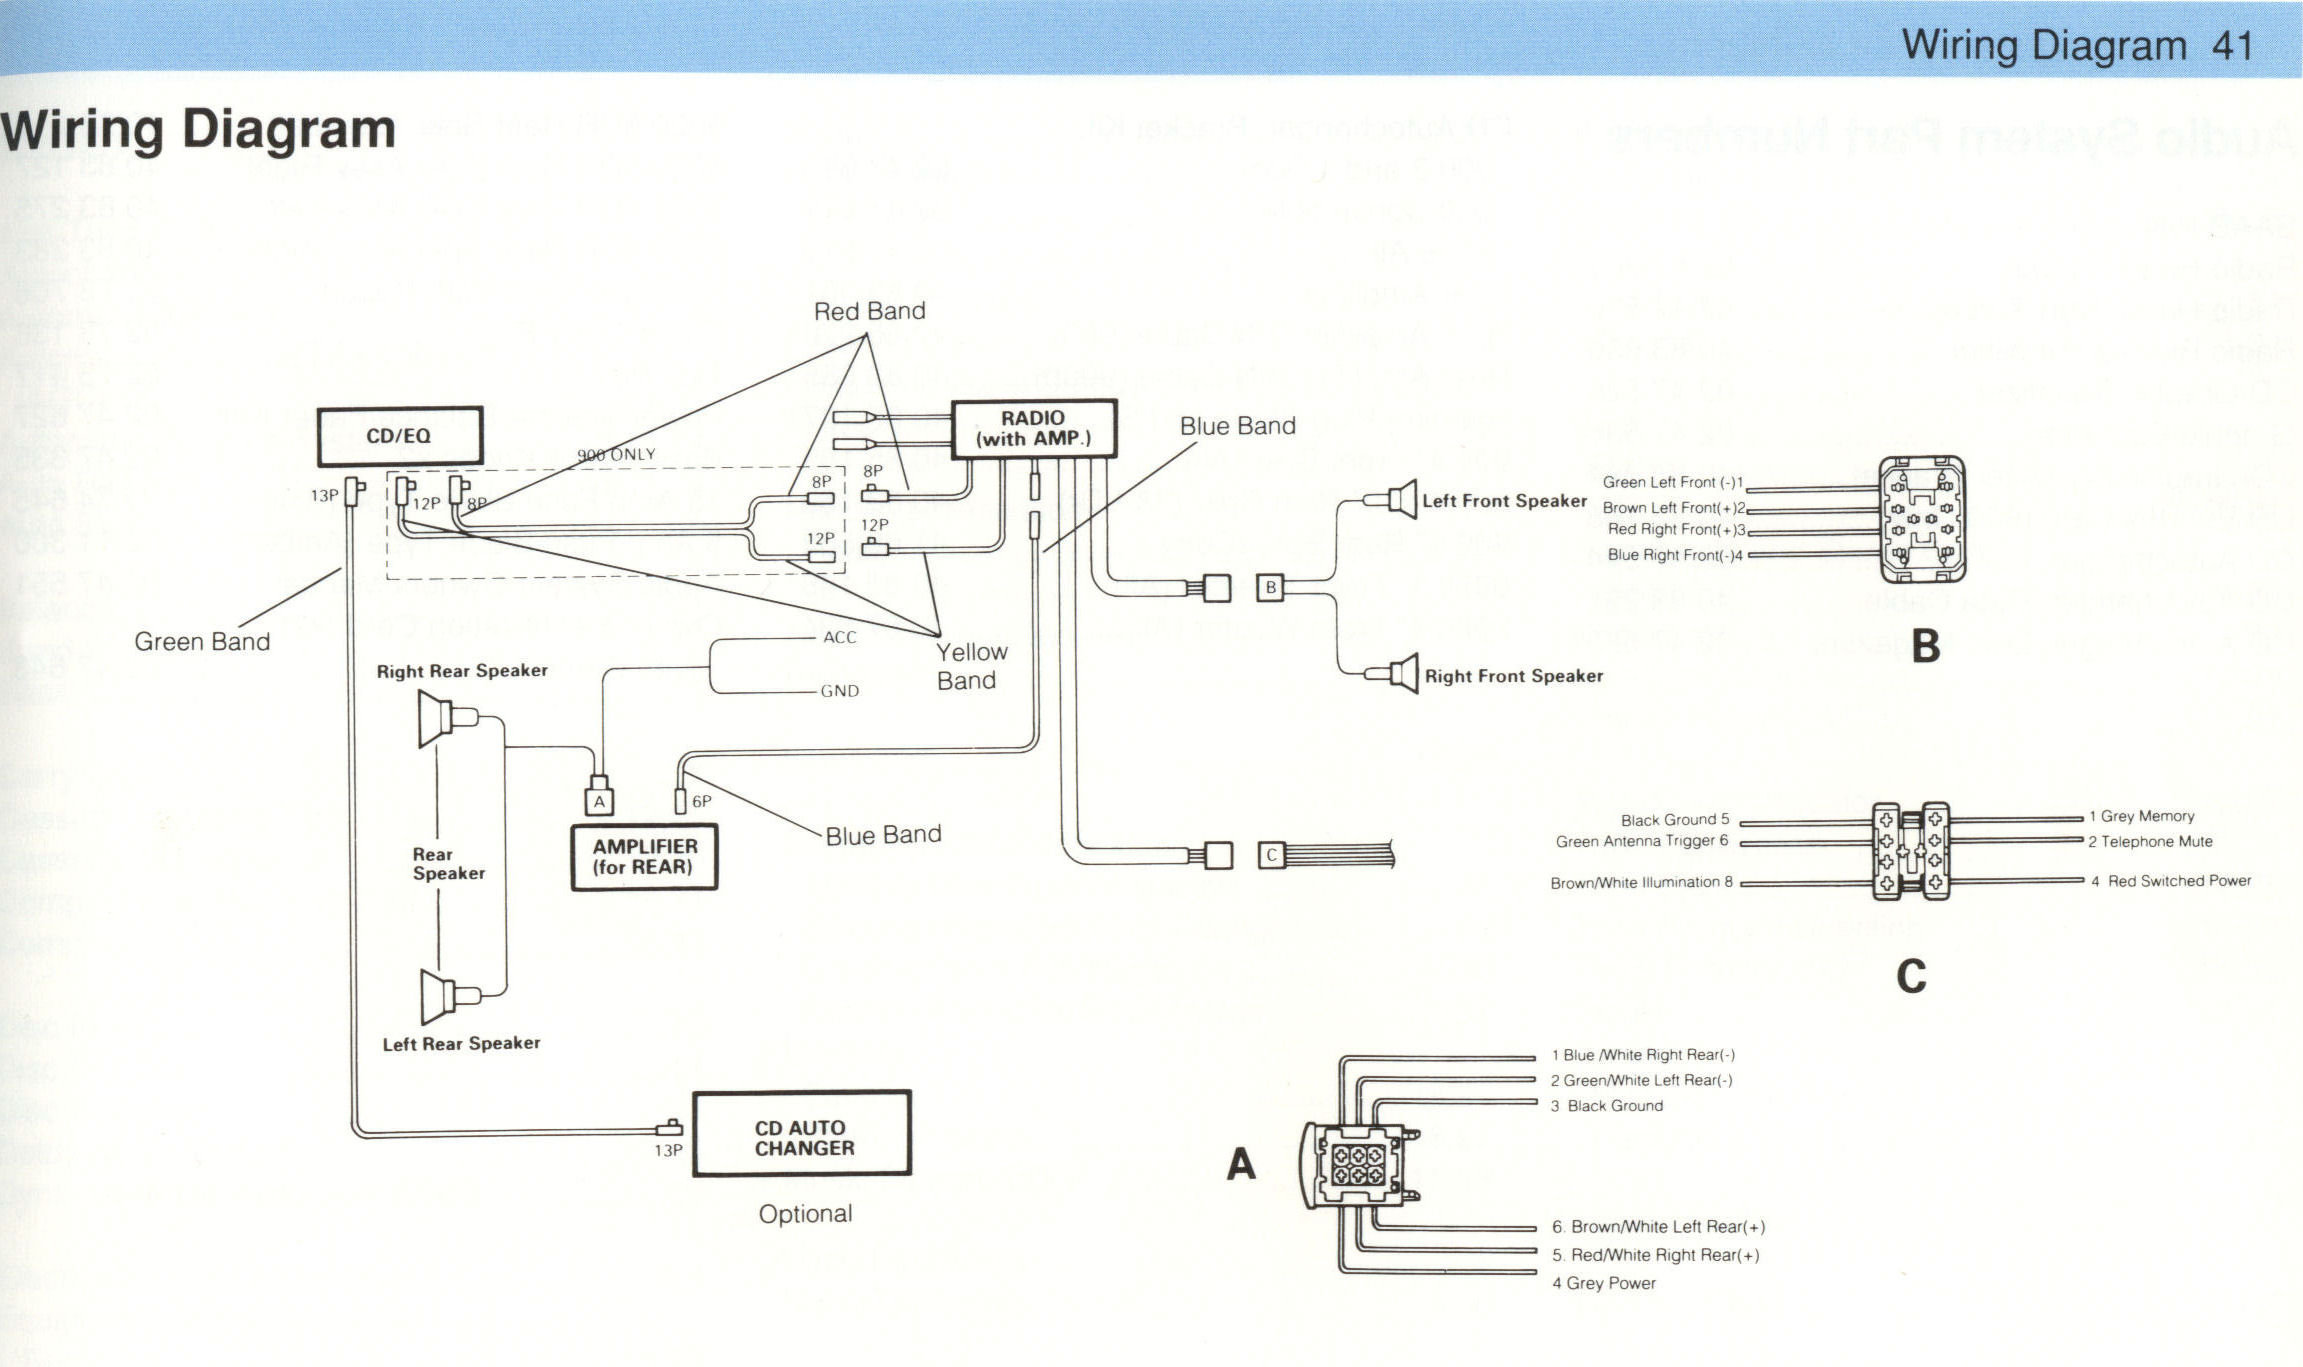 Clarion 6 Cd Changer Wiring Diagram 35 Images Cmd6 Saabclarion Schematics 92 94 Saab Audio System My84 At Highcare